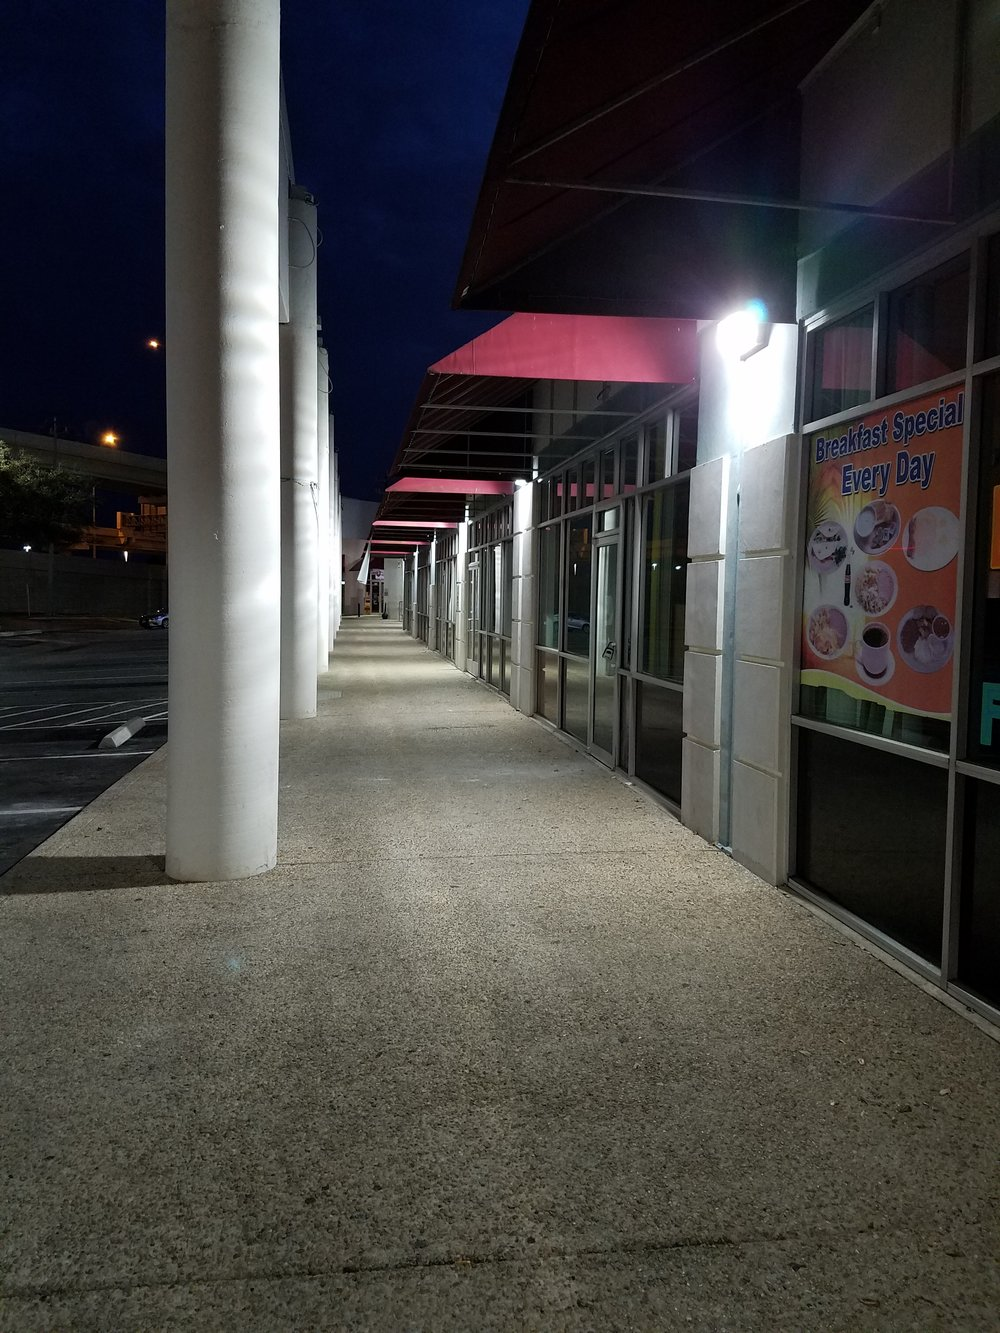 Walkway after upgrade - LED wallpack fixtures